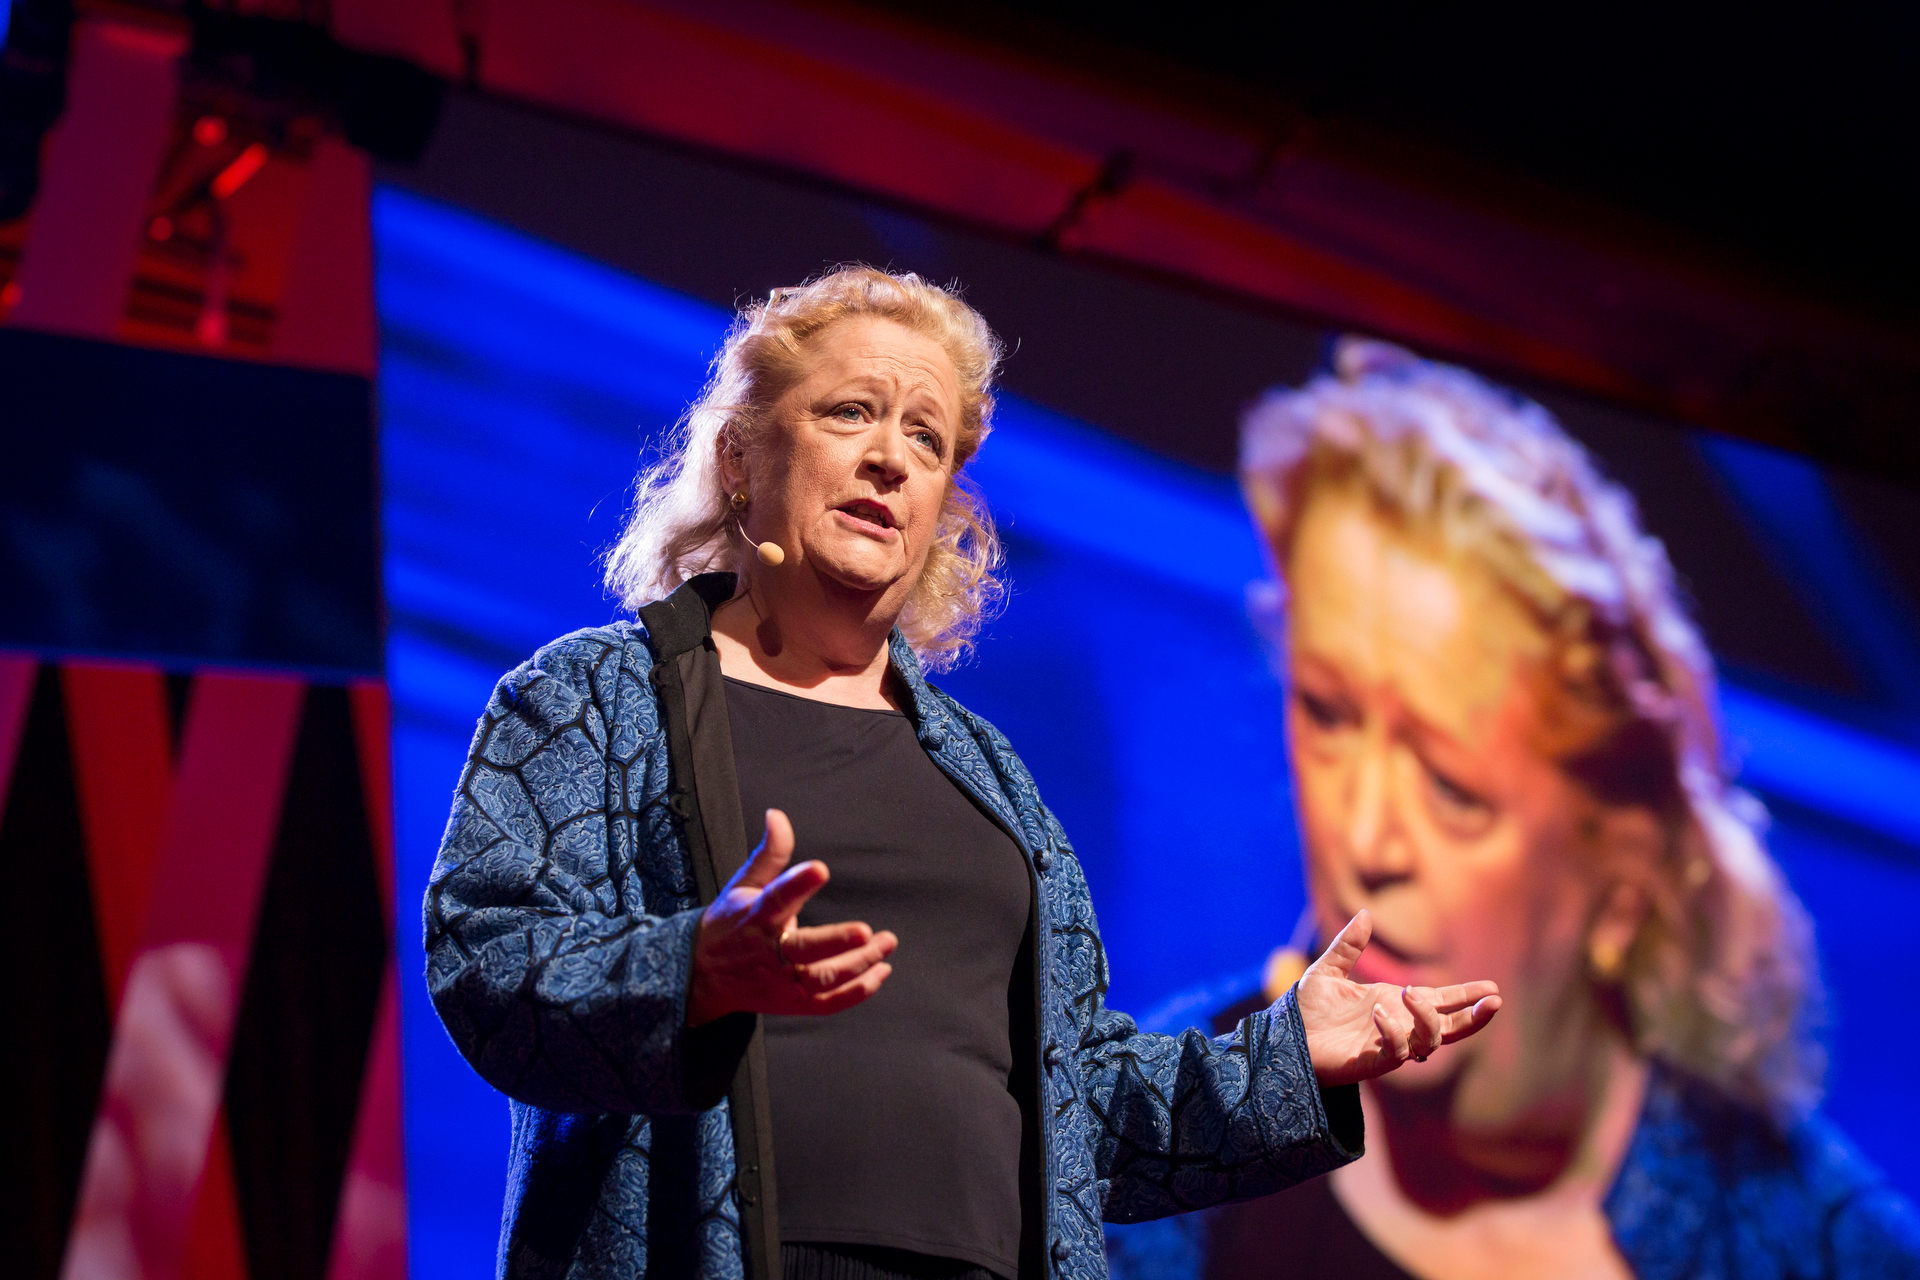 Margaret Hefferman speaks at TEDWomen2015 - Momentum, Session 2, May 28, 2015, Monterey Conference Center, Monterey, California, USA. Photo: Marla Aufmuth/TED